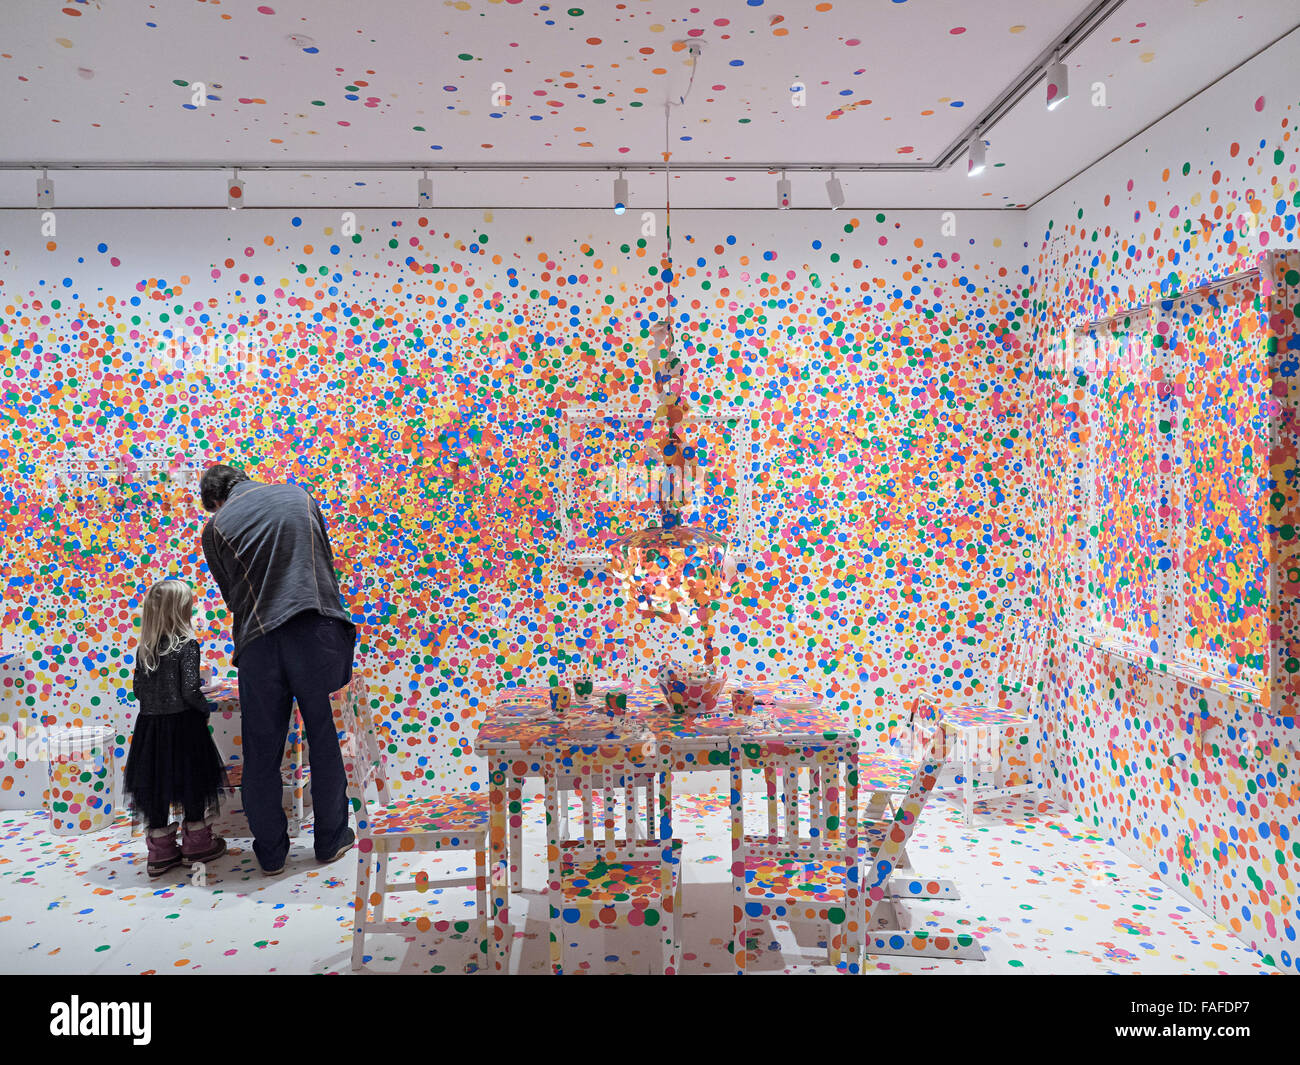 Yayoi Kusama's 'Obliteration Room' art installation at Louisiana Museum of Modern Art. FOR EDITORIAL - Stock Image